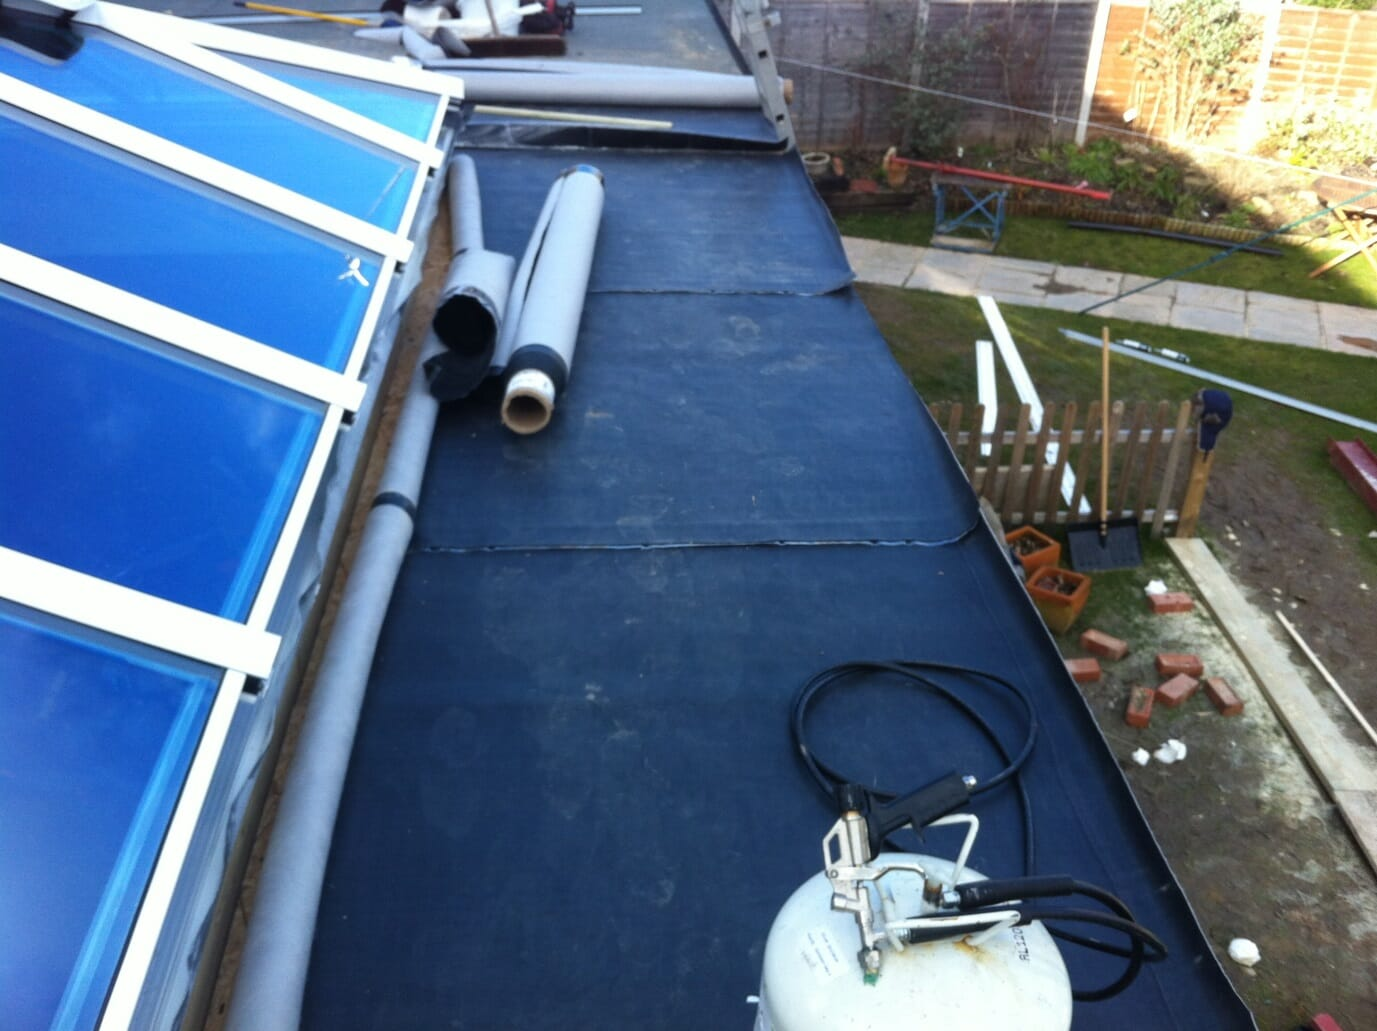 Orangery roof construction, repair and replacement with a Duoply EPDM rubber roofing membrane